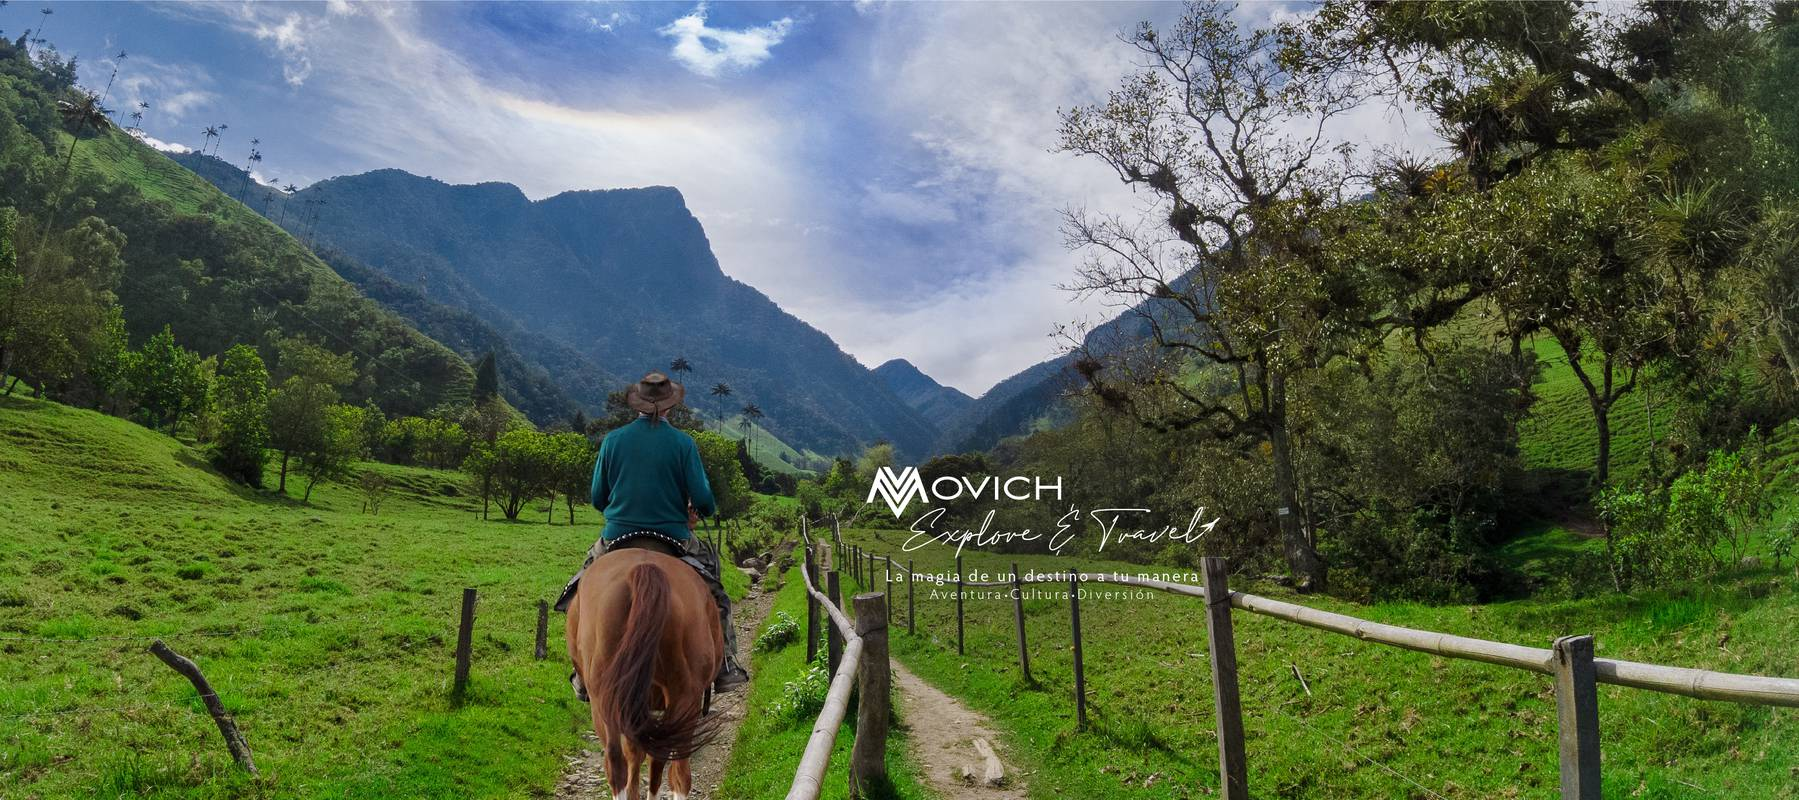 Explore & Travel Movich Hotels